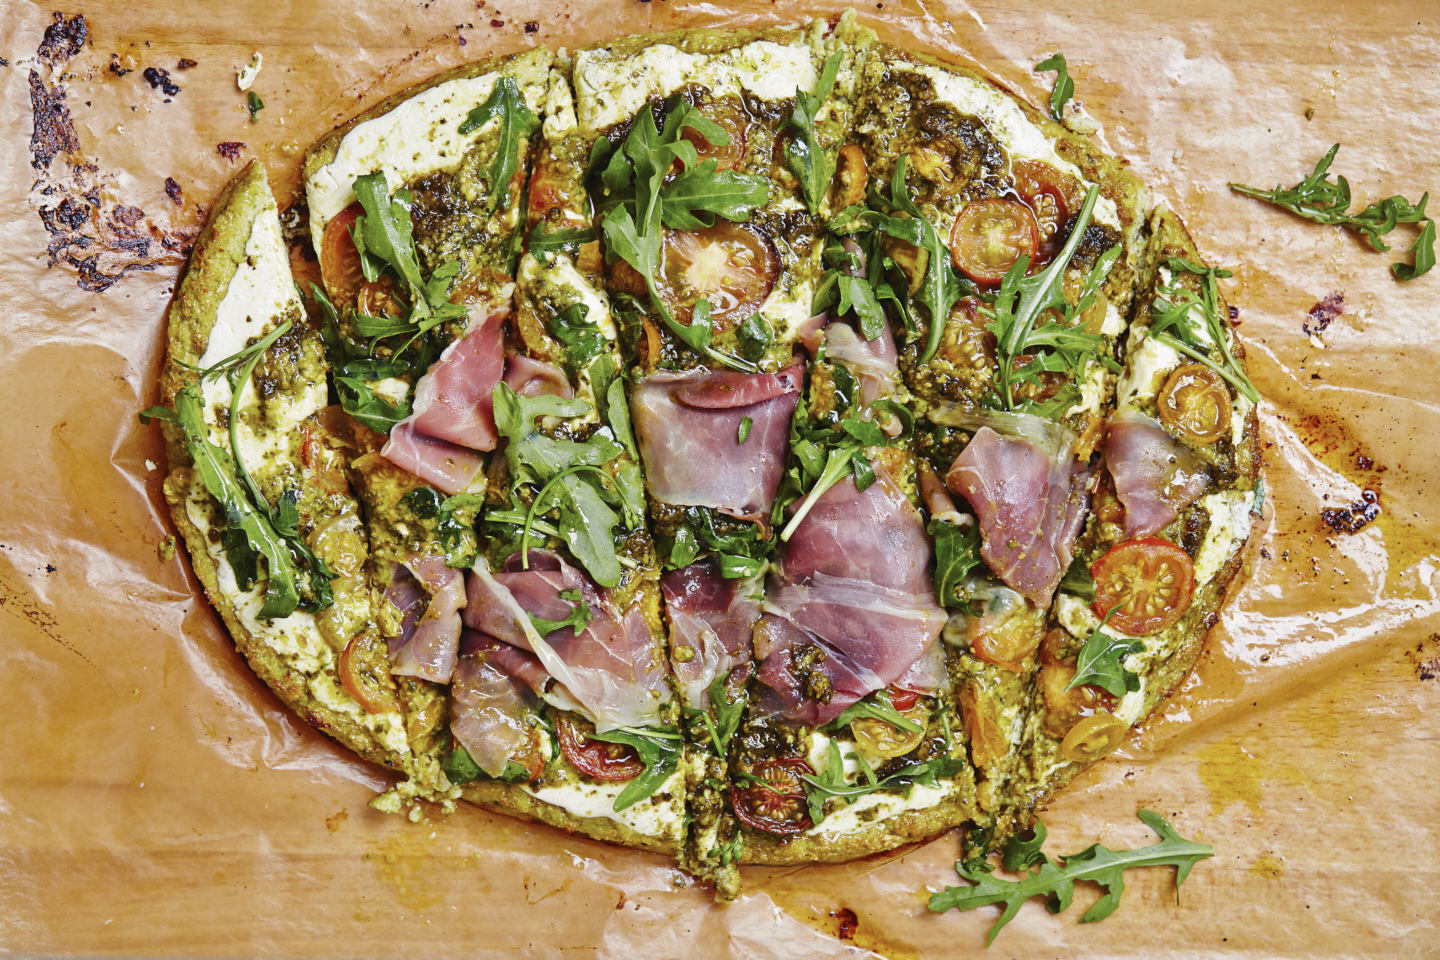 Cauliflower Pizza with Prosciutto, Tomato & Pesto (GF)